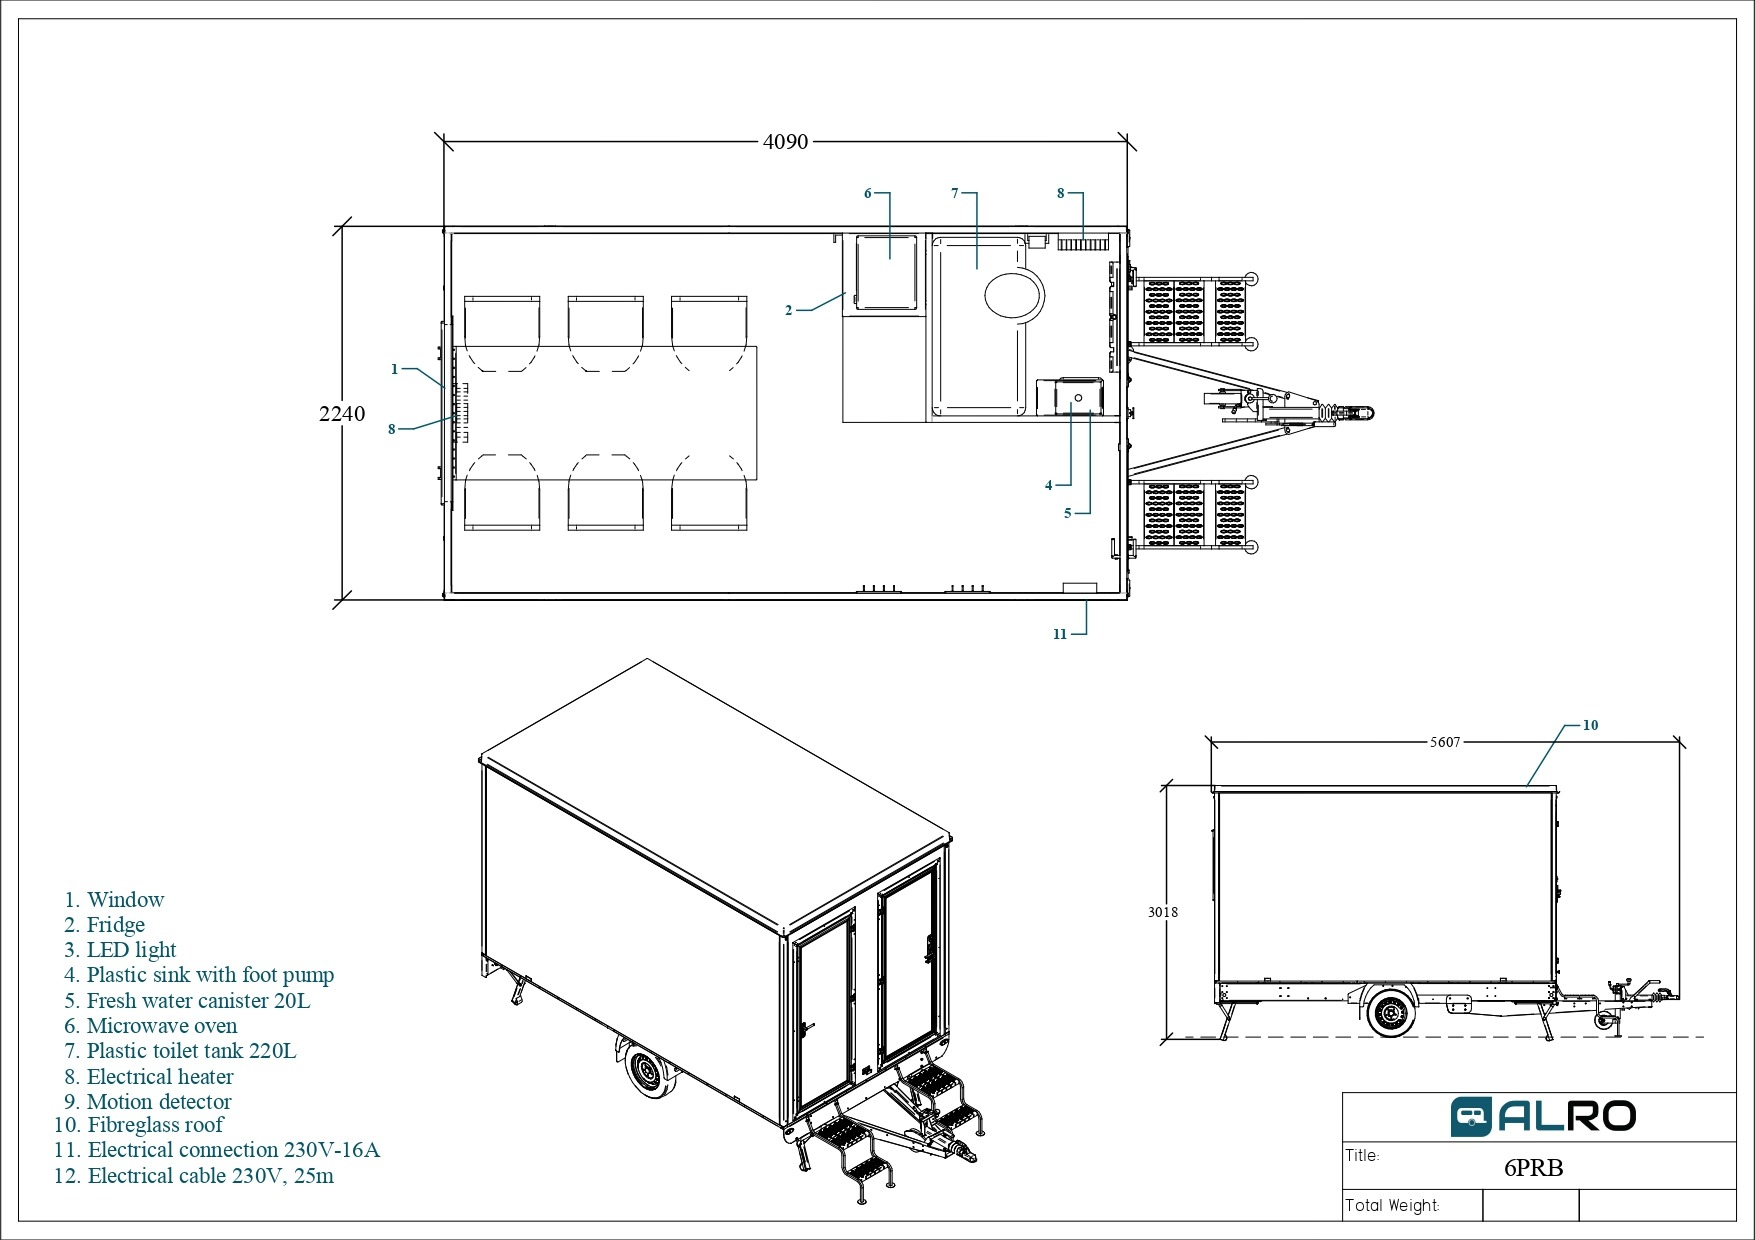 Office trailer 6PRB